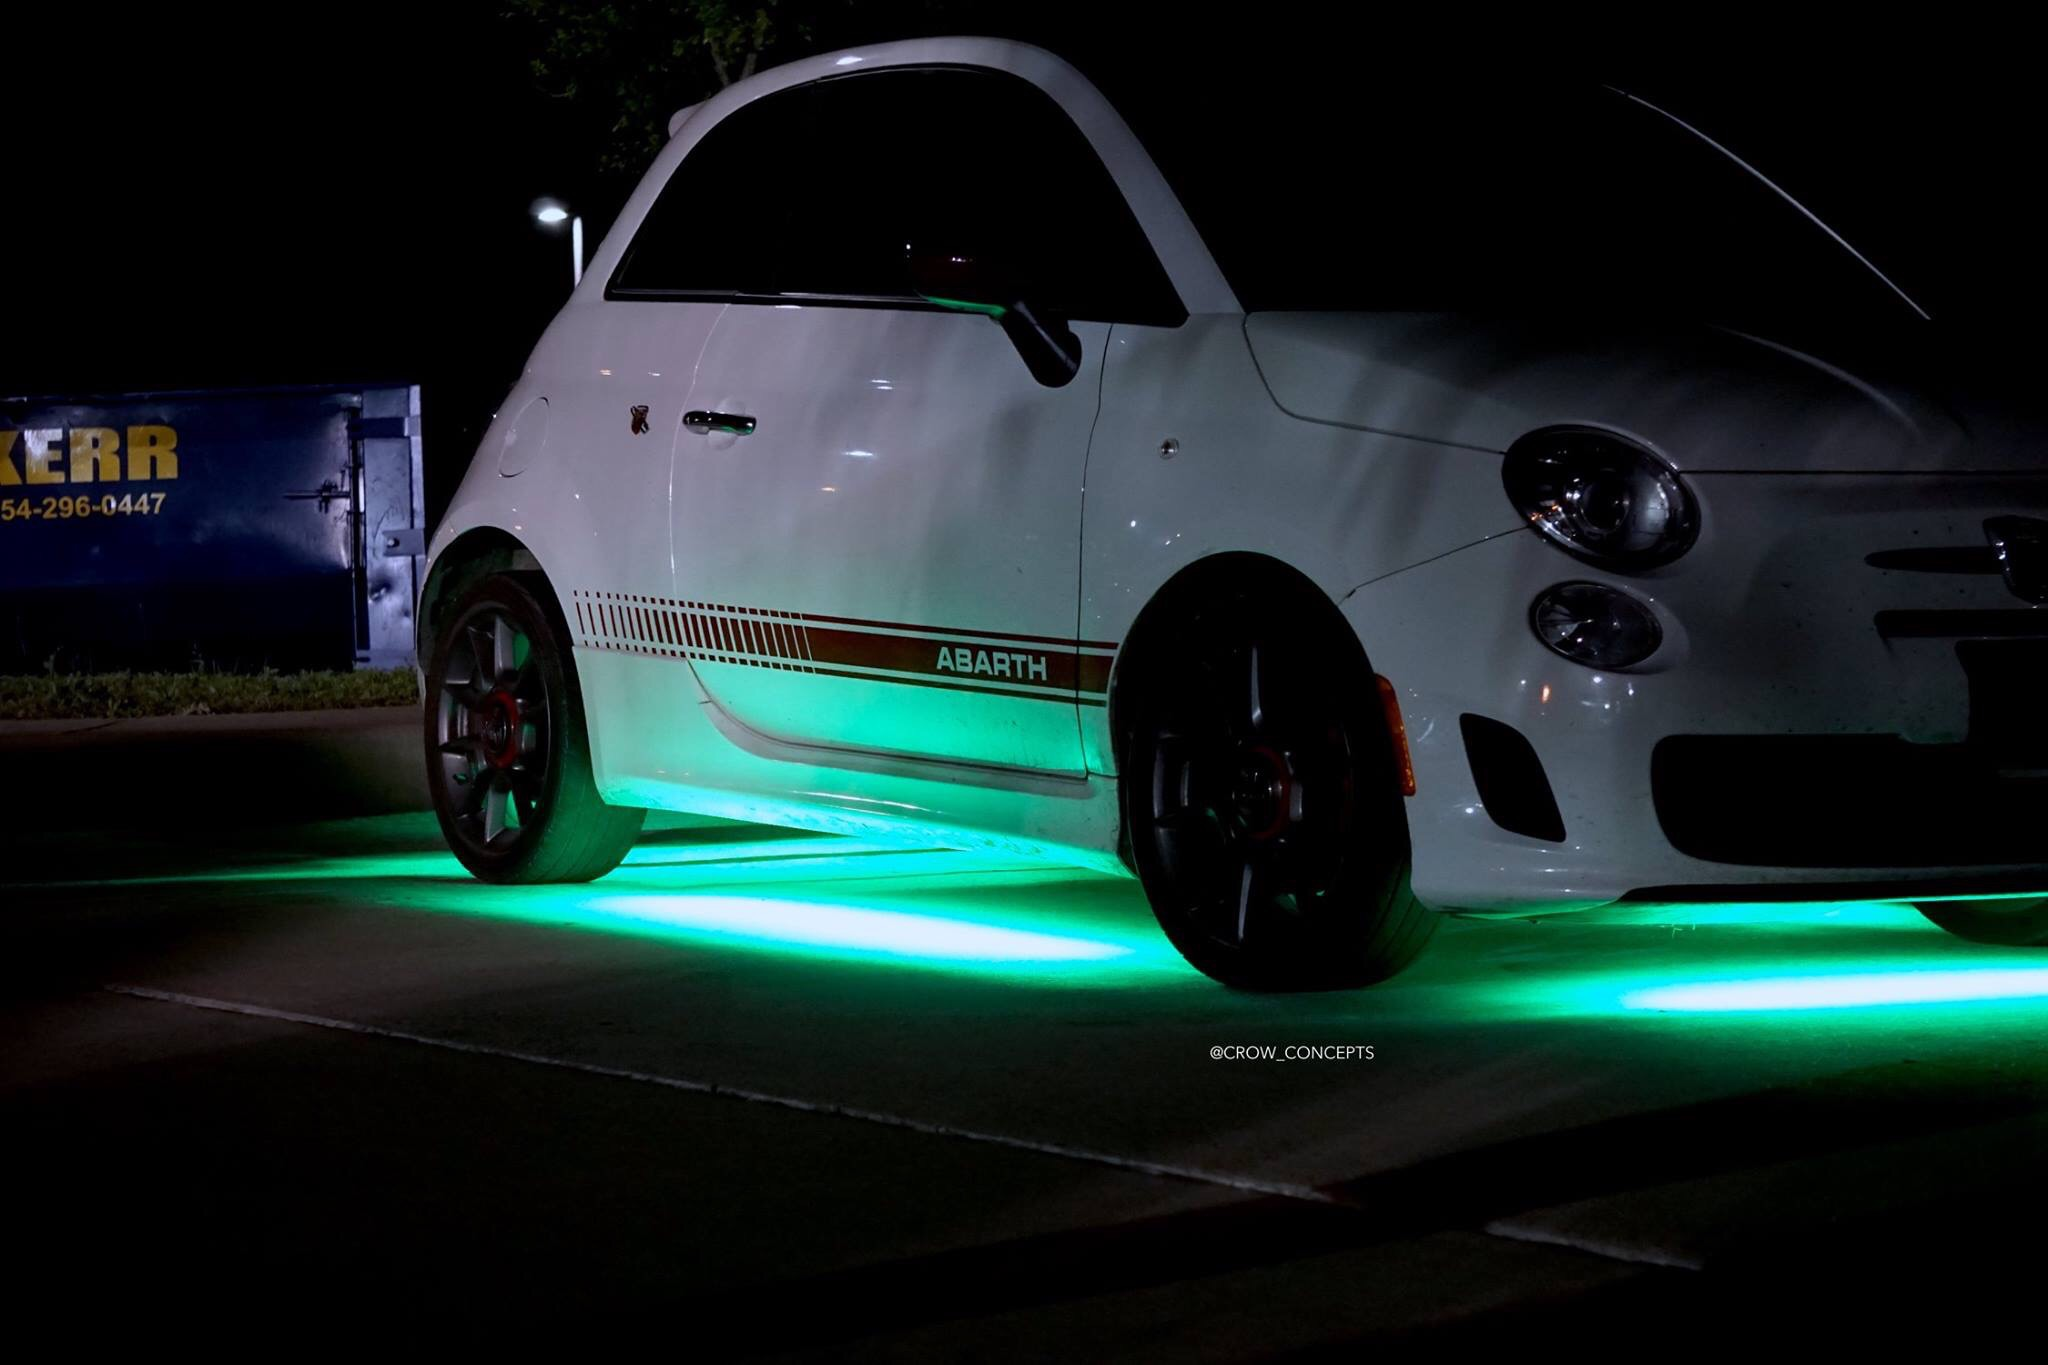 Fiat 500 Abarth Underglow Crow Concepts